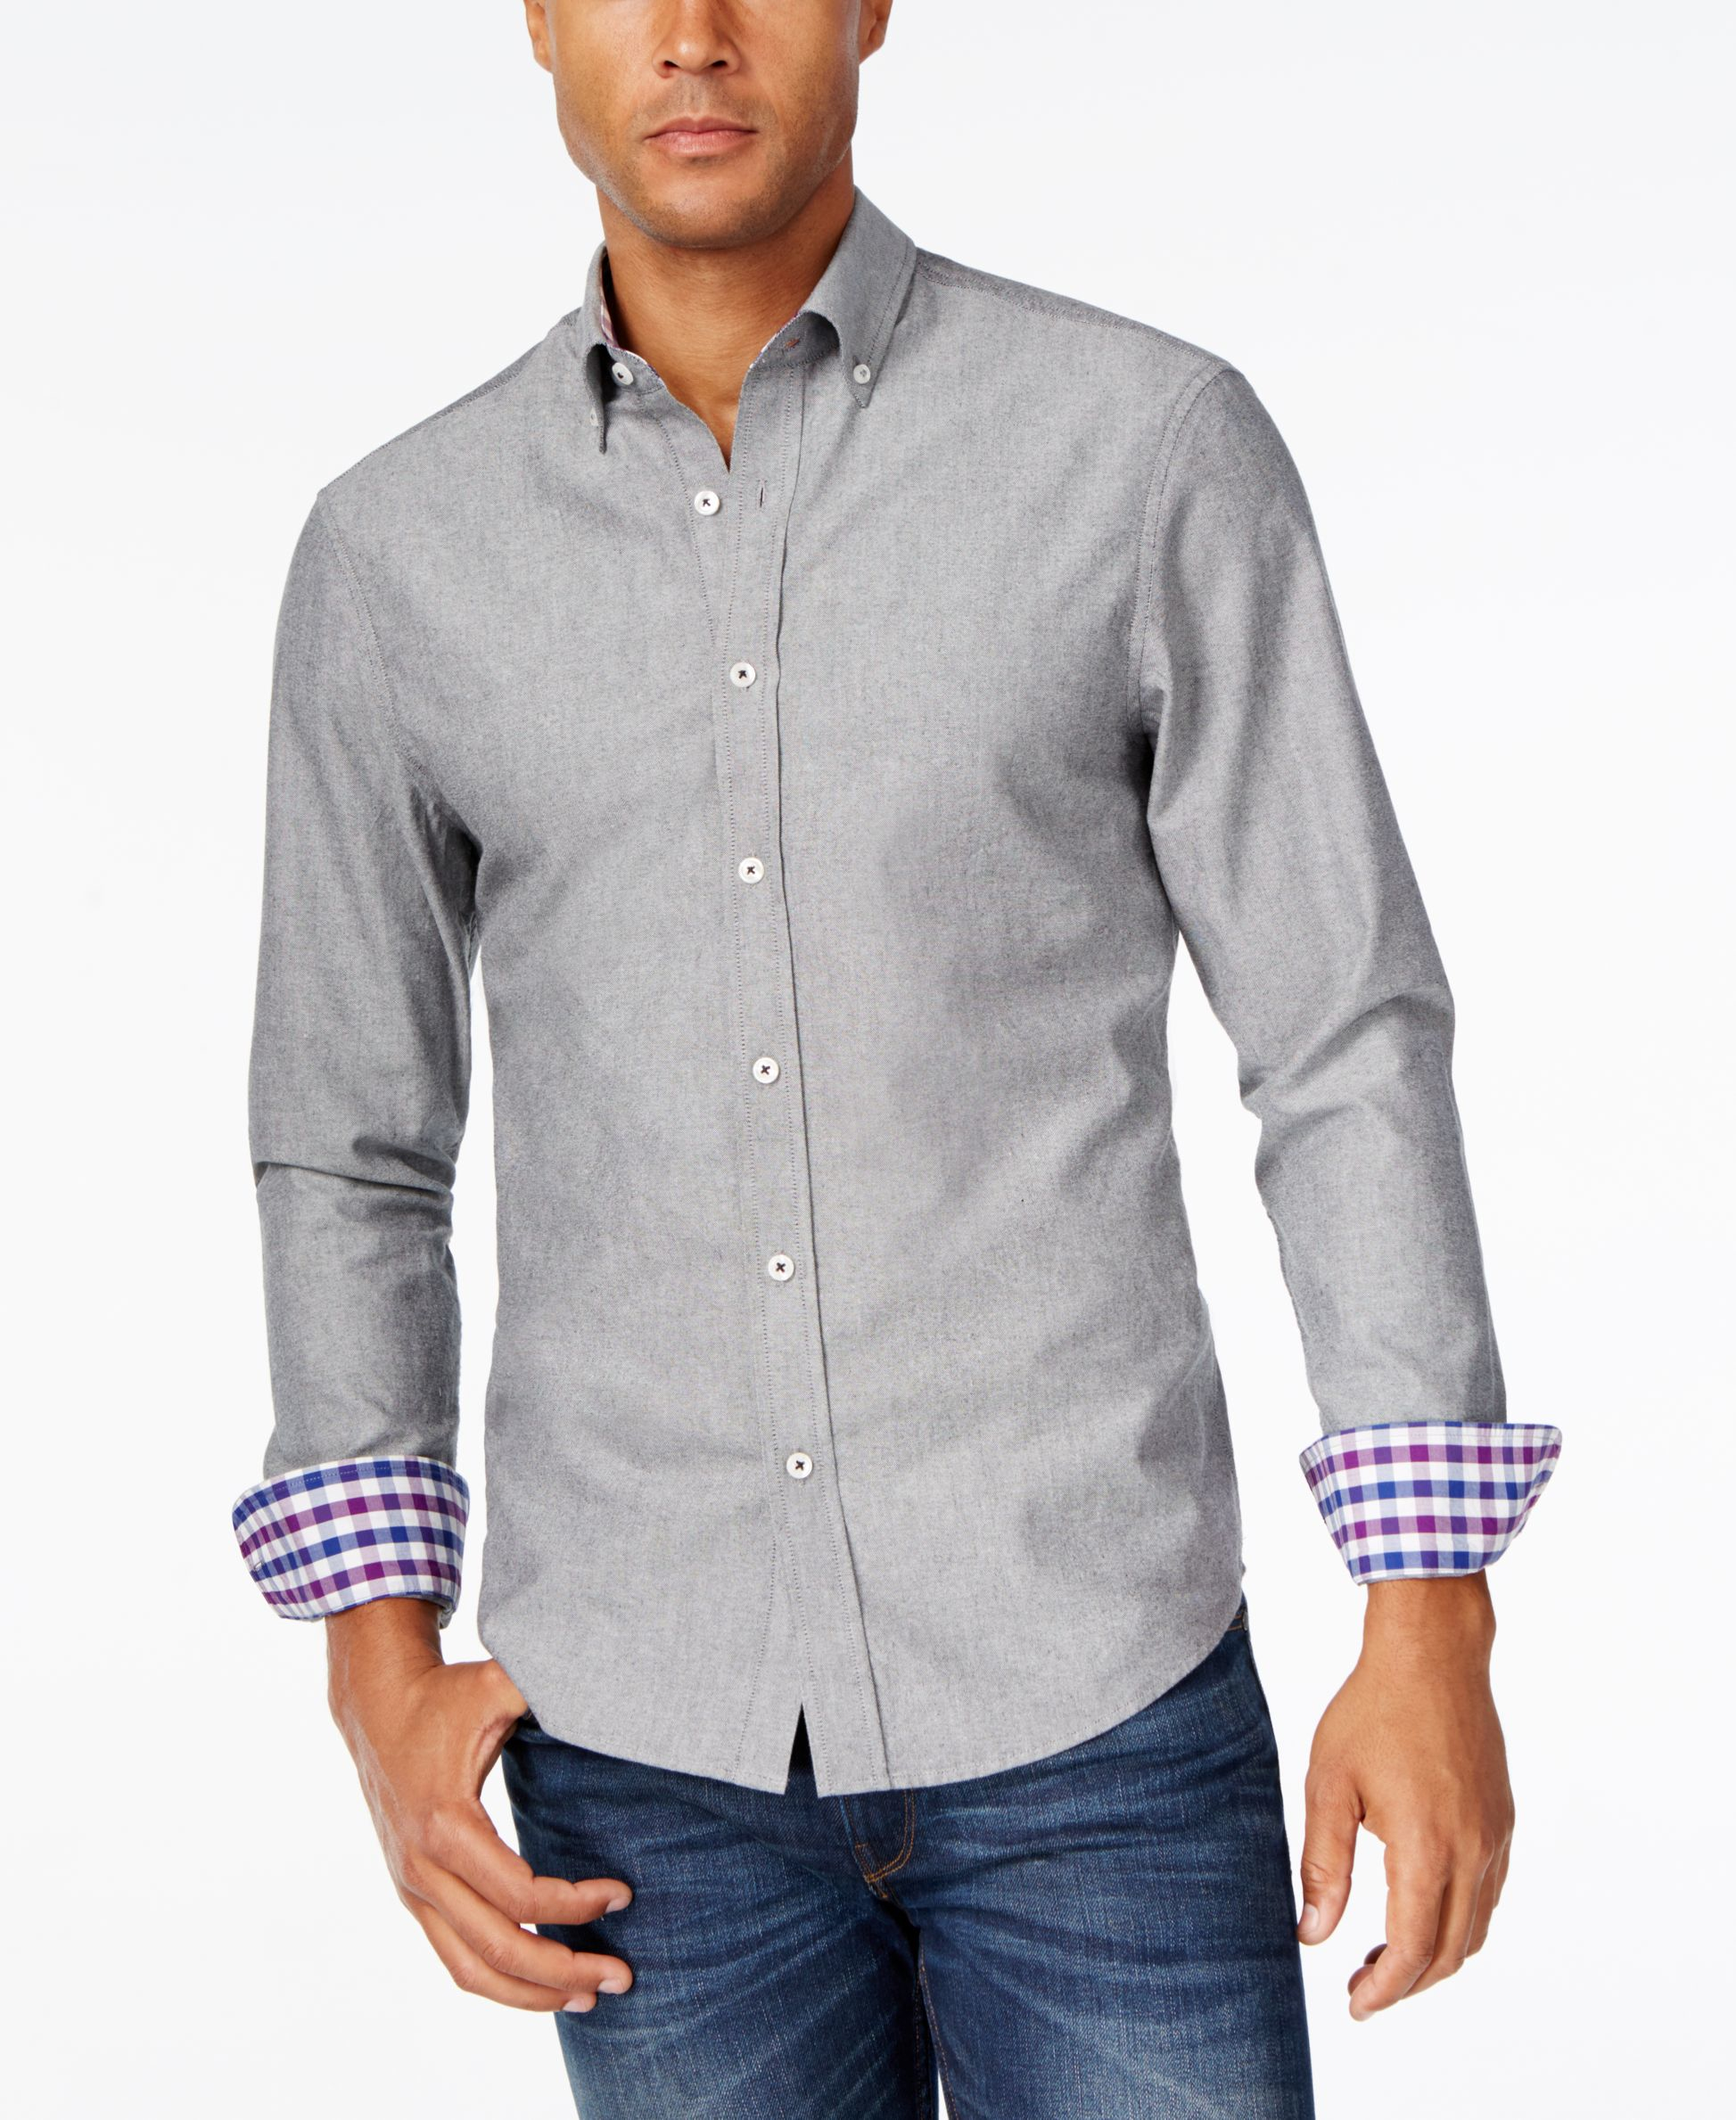 Park West Men 39 S Contrast Cuff Long Sleeve Shirt Only At